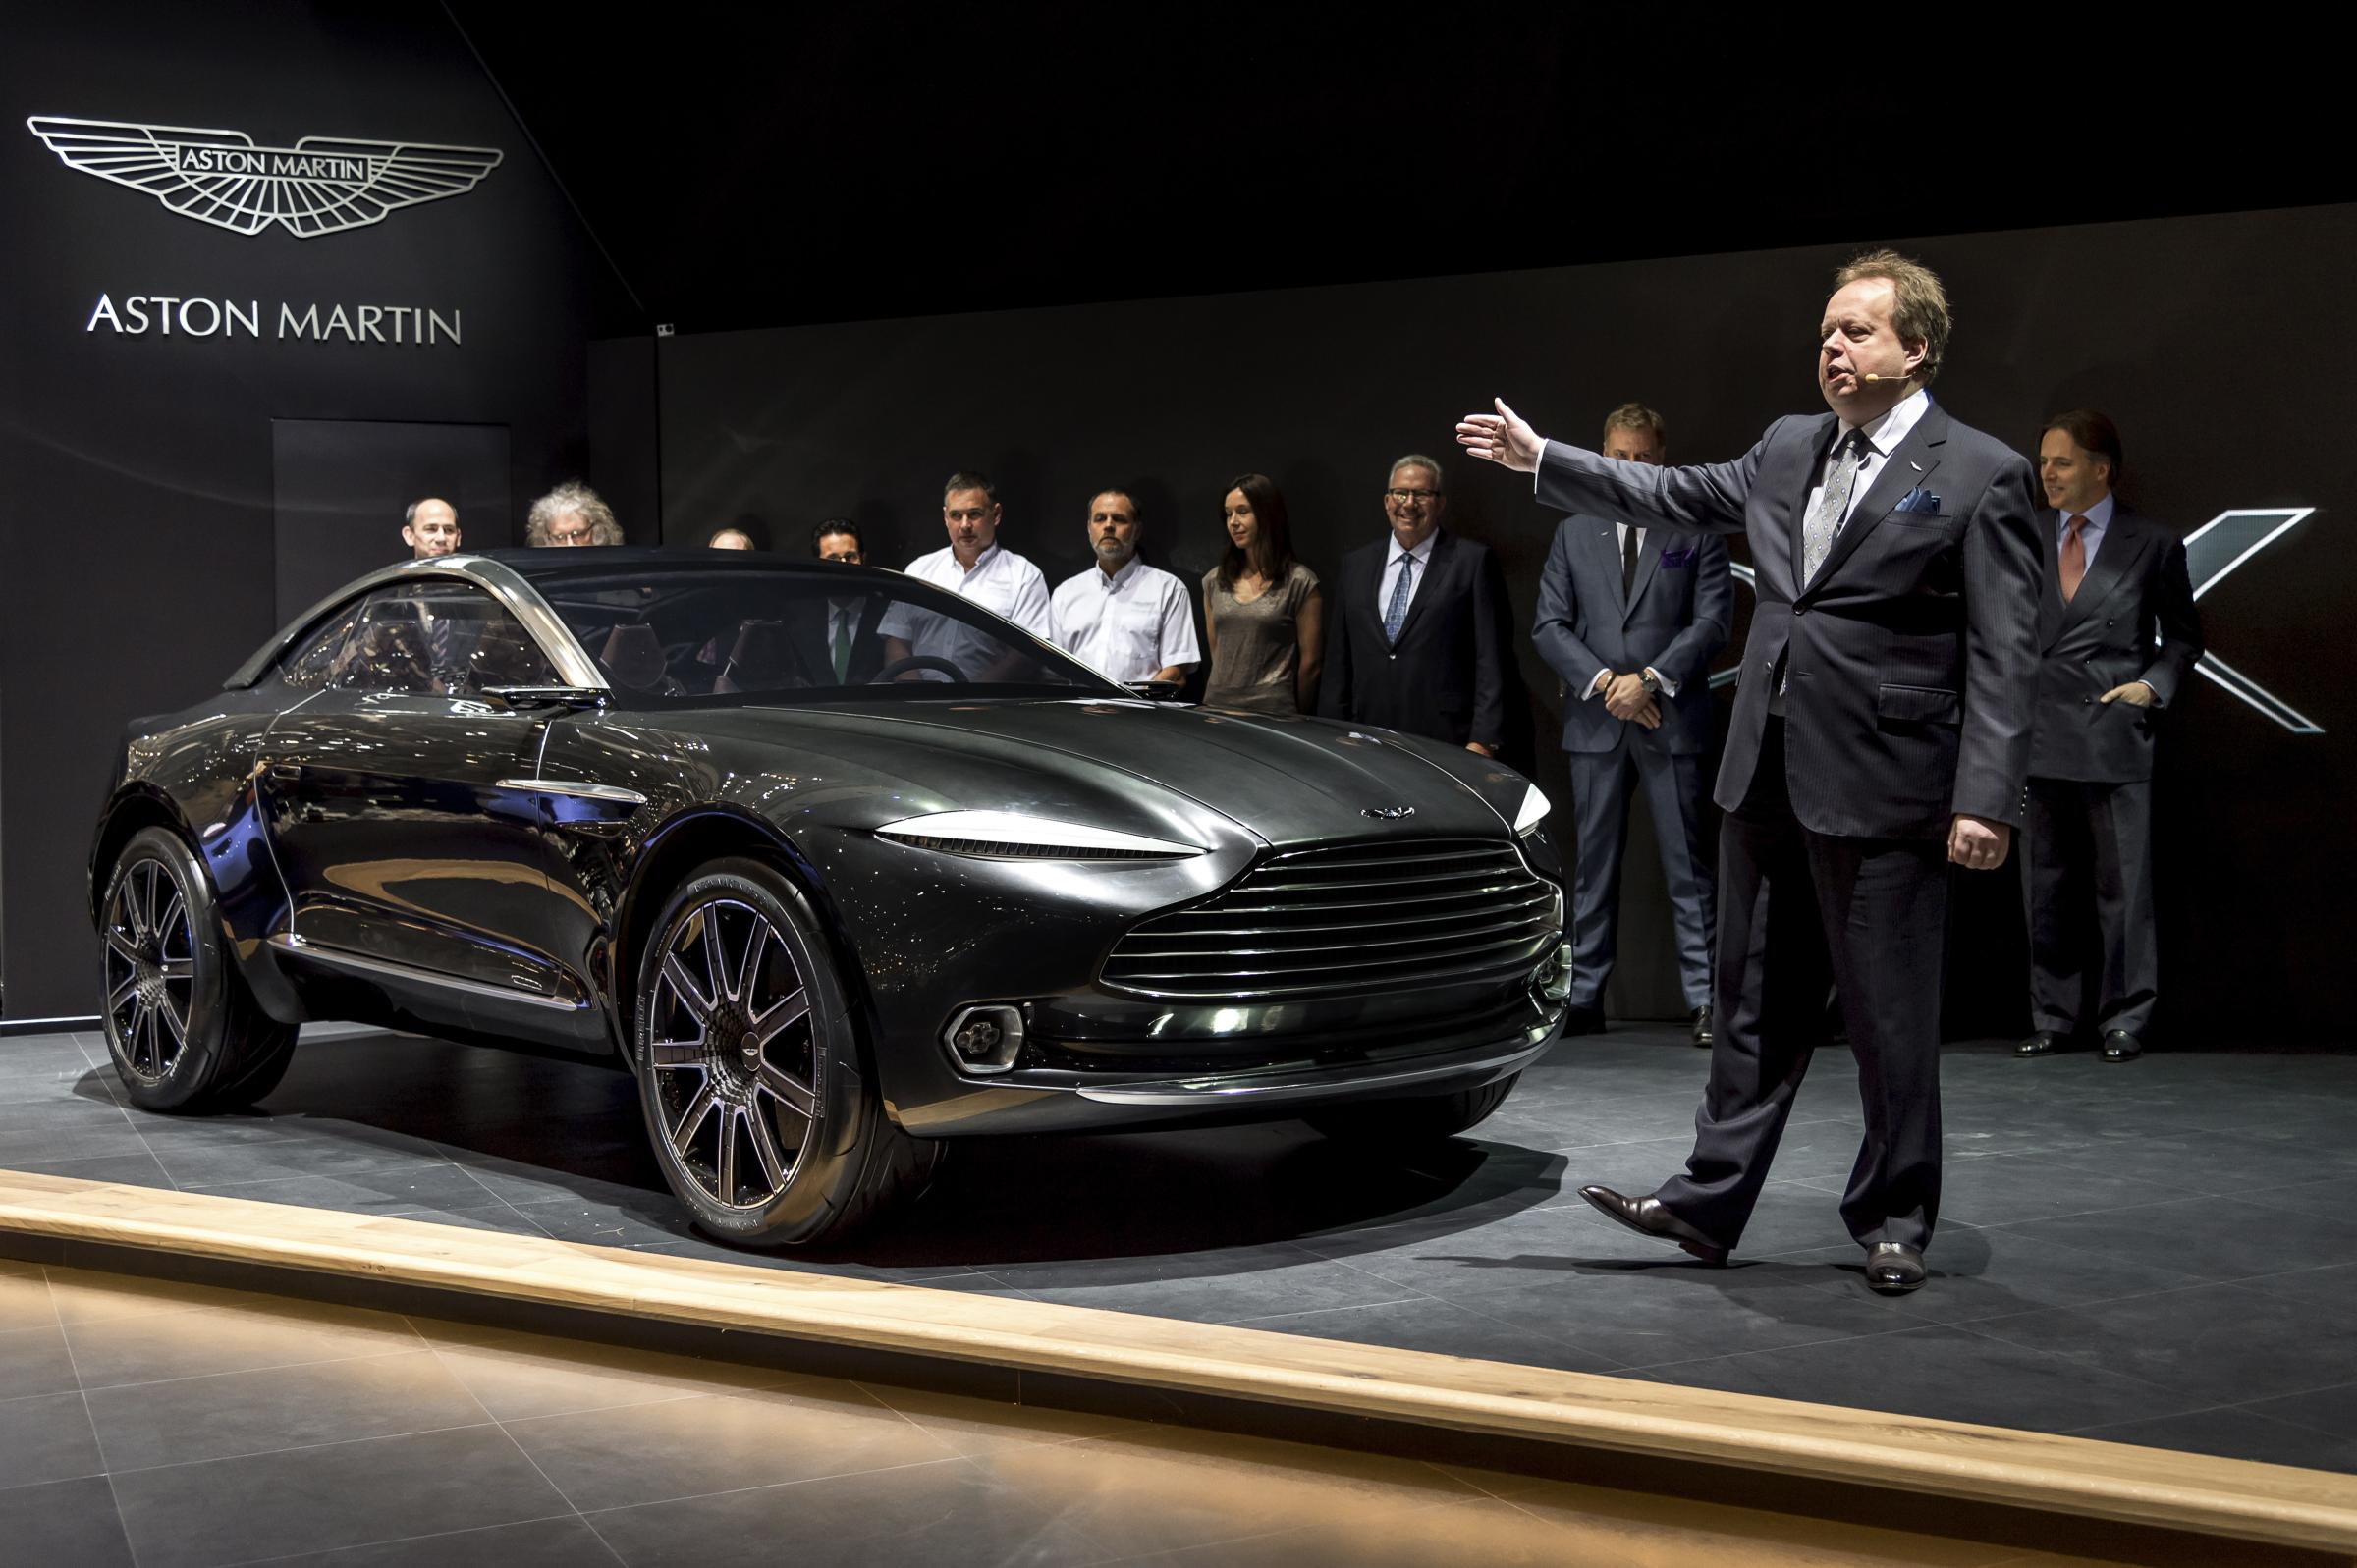 Aston Martin DBX Concept unveiled at the 2015 Geneva Motor Show...